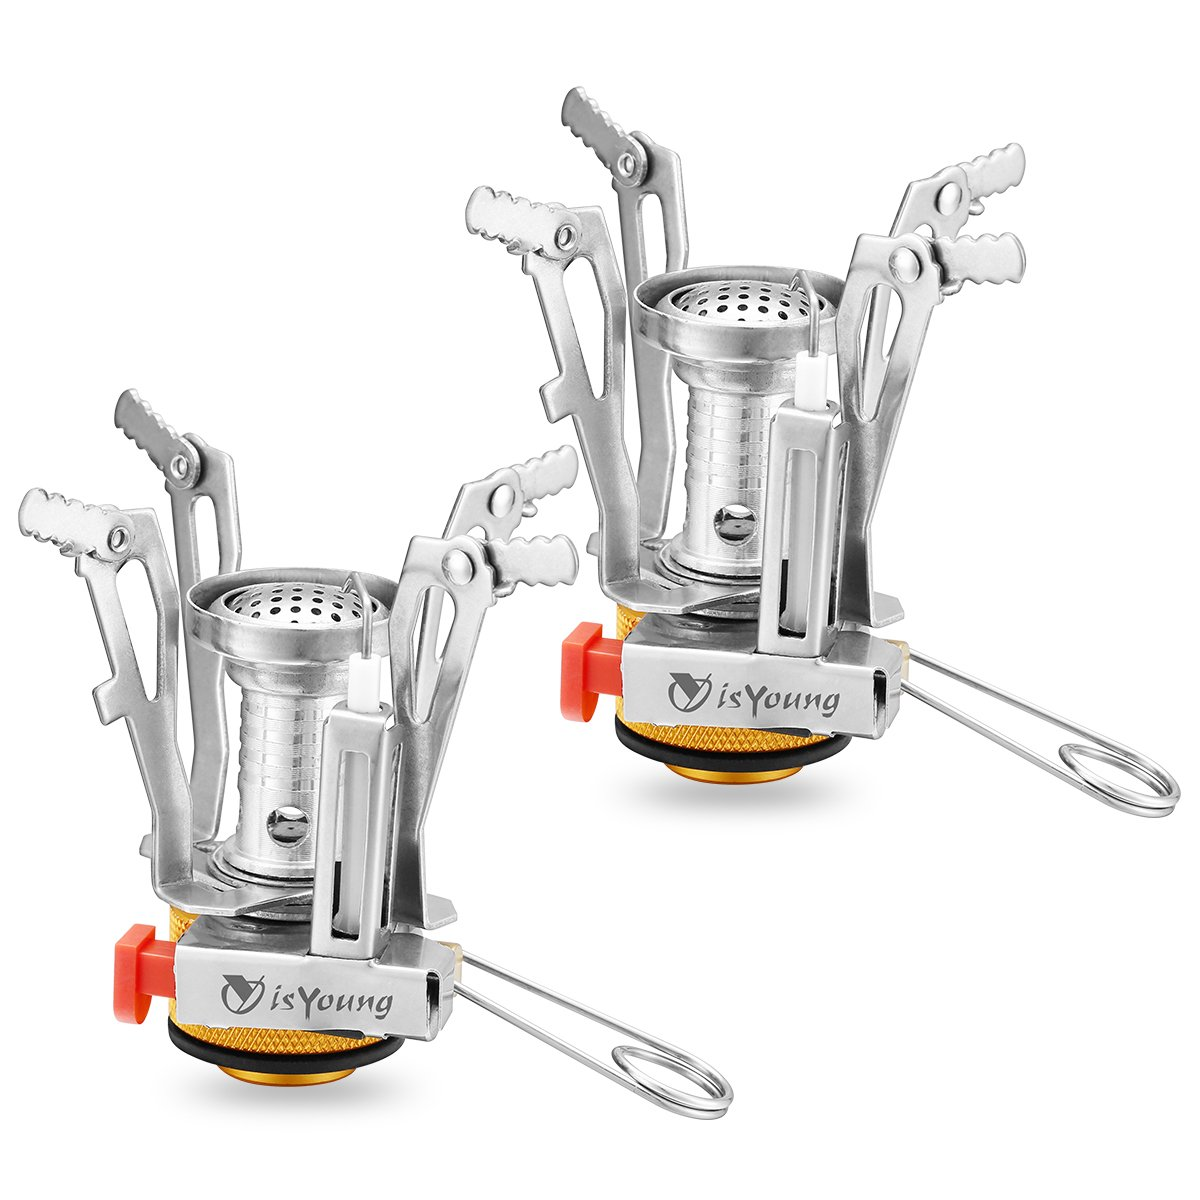 isYoung Outdoor Mini Camping Stove, 2-Pack Ultralight Camping Stove – Portable and Come with Piezo Ignition Orange